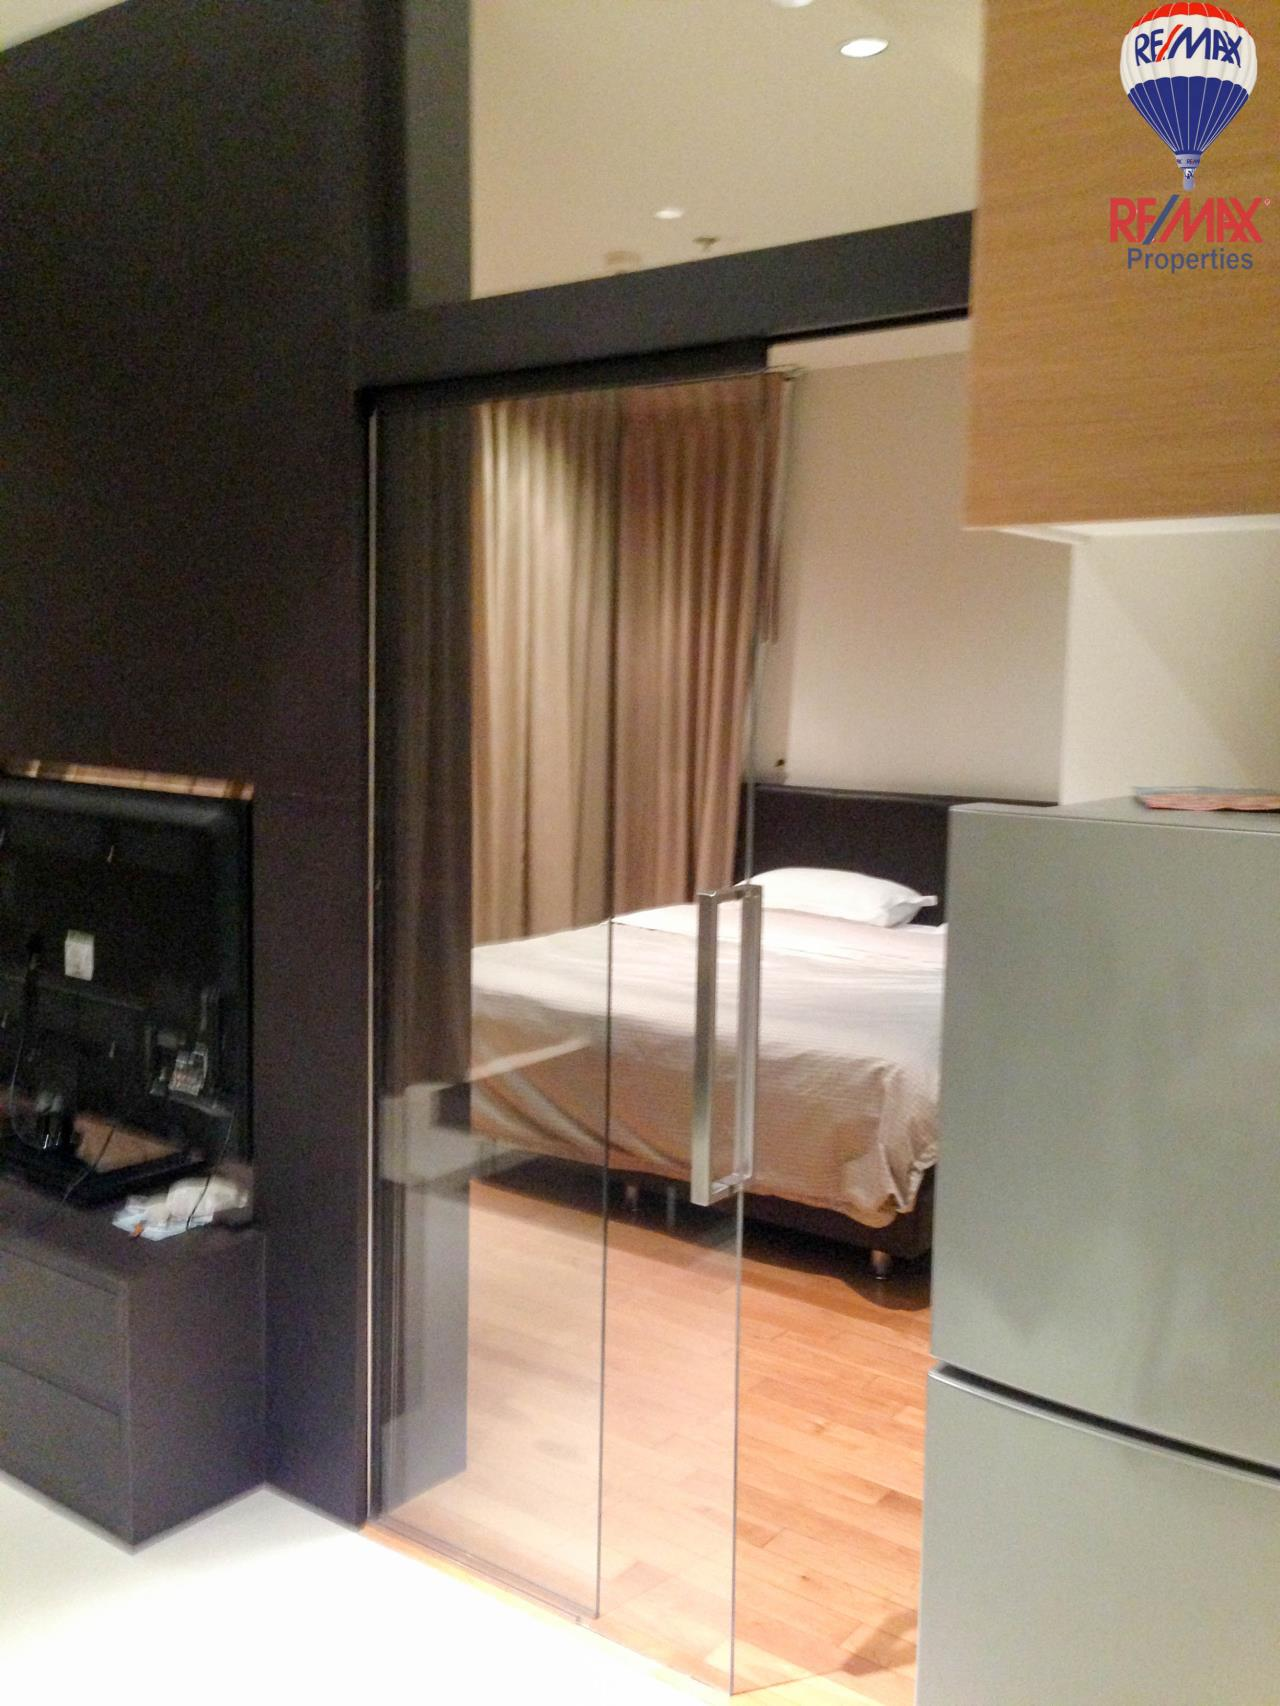 RE/MAX Properties Agency's The Emporio Place For Sales 1 bed 47 Sqm 2